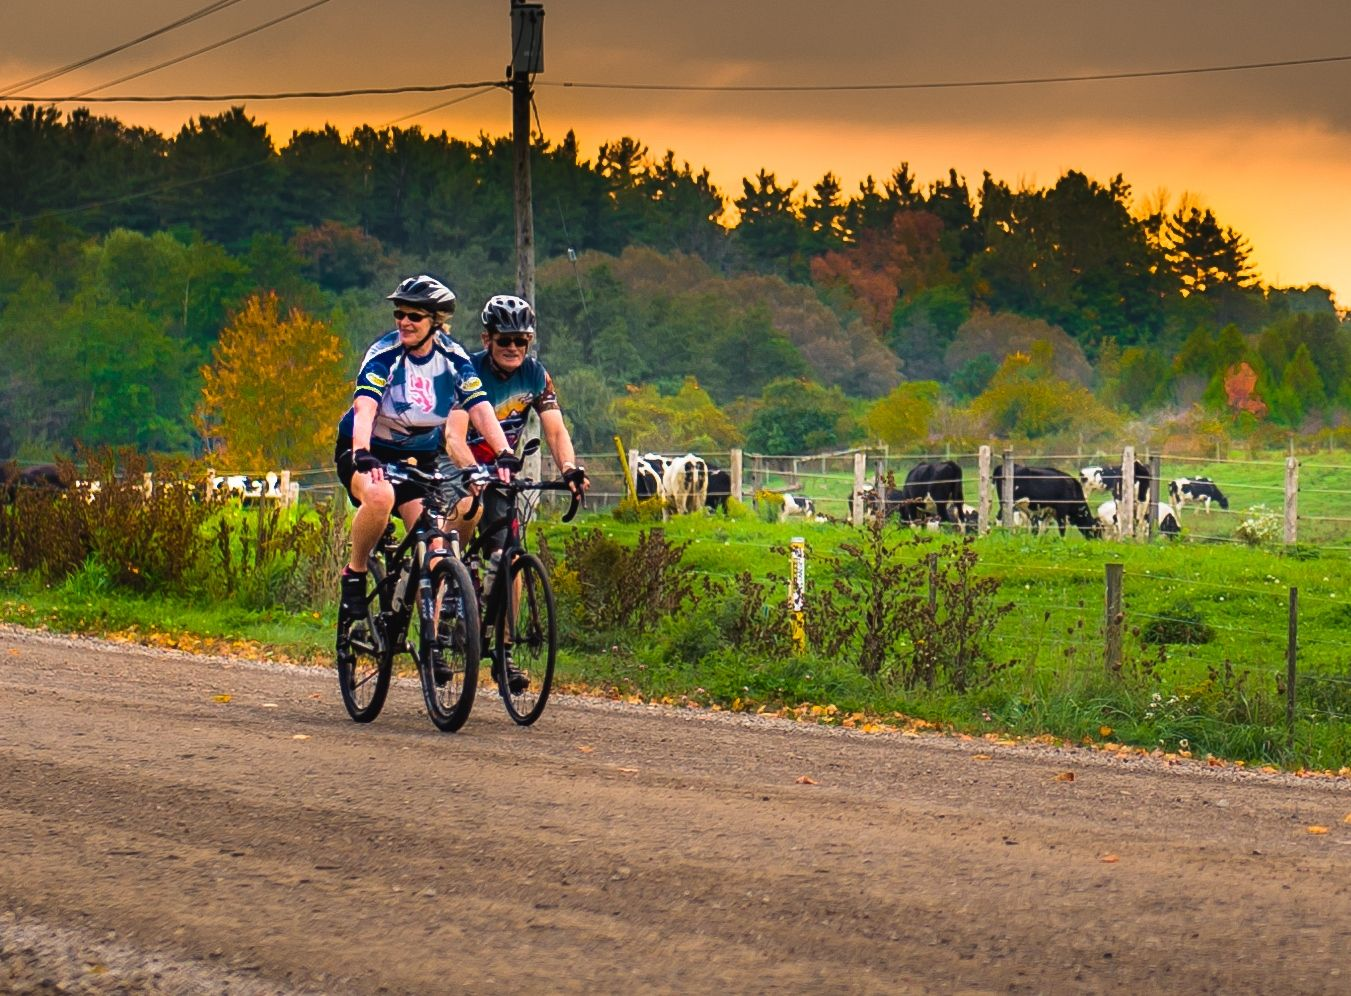 Visit RideOxfordca to plan your next ride in Oxford County View